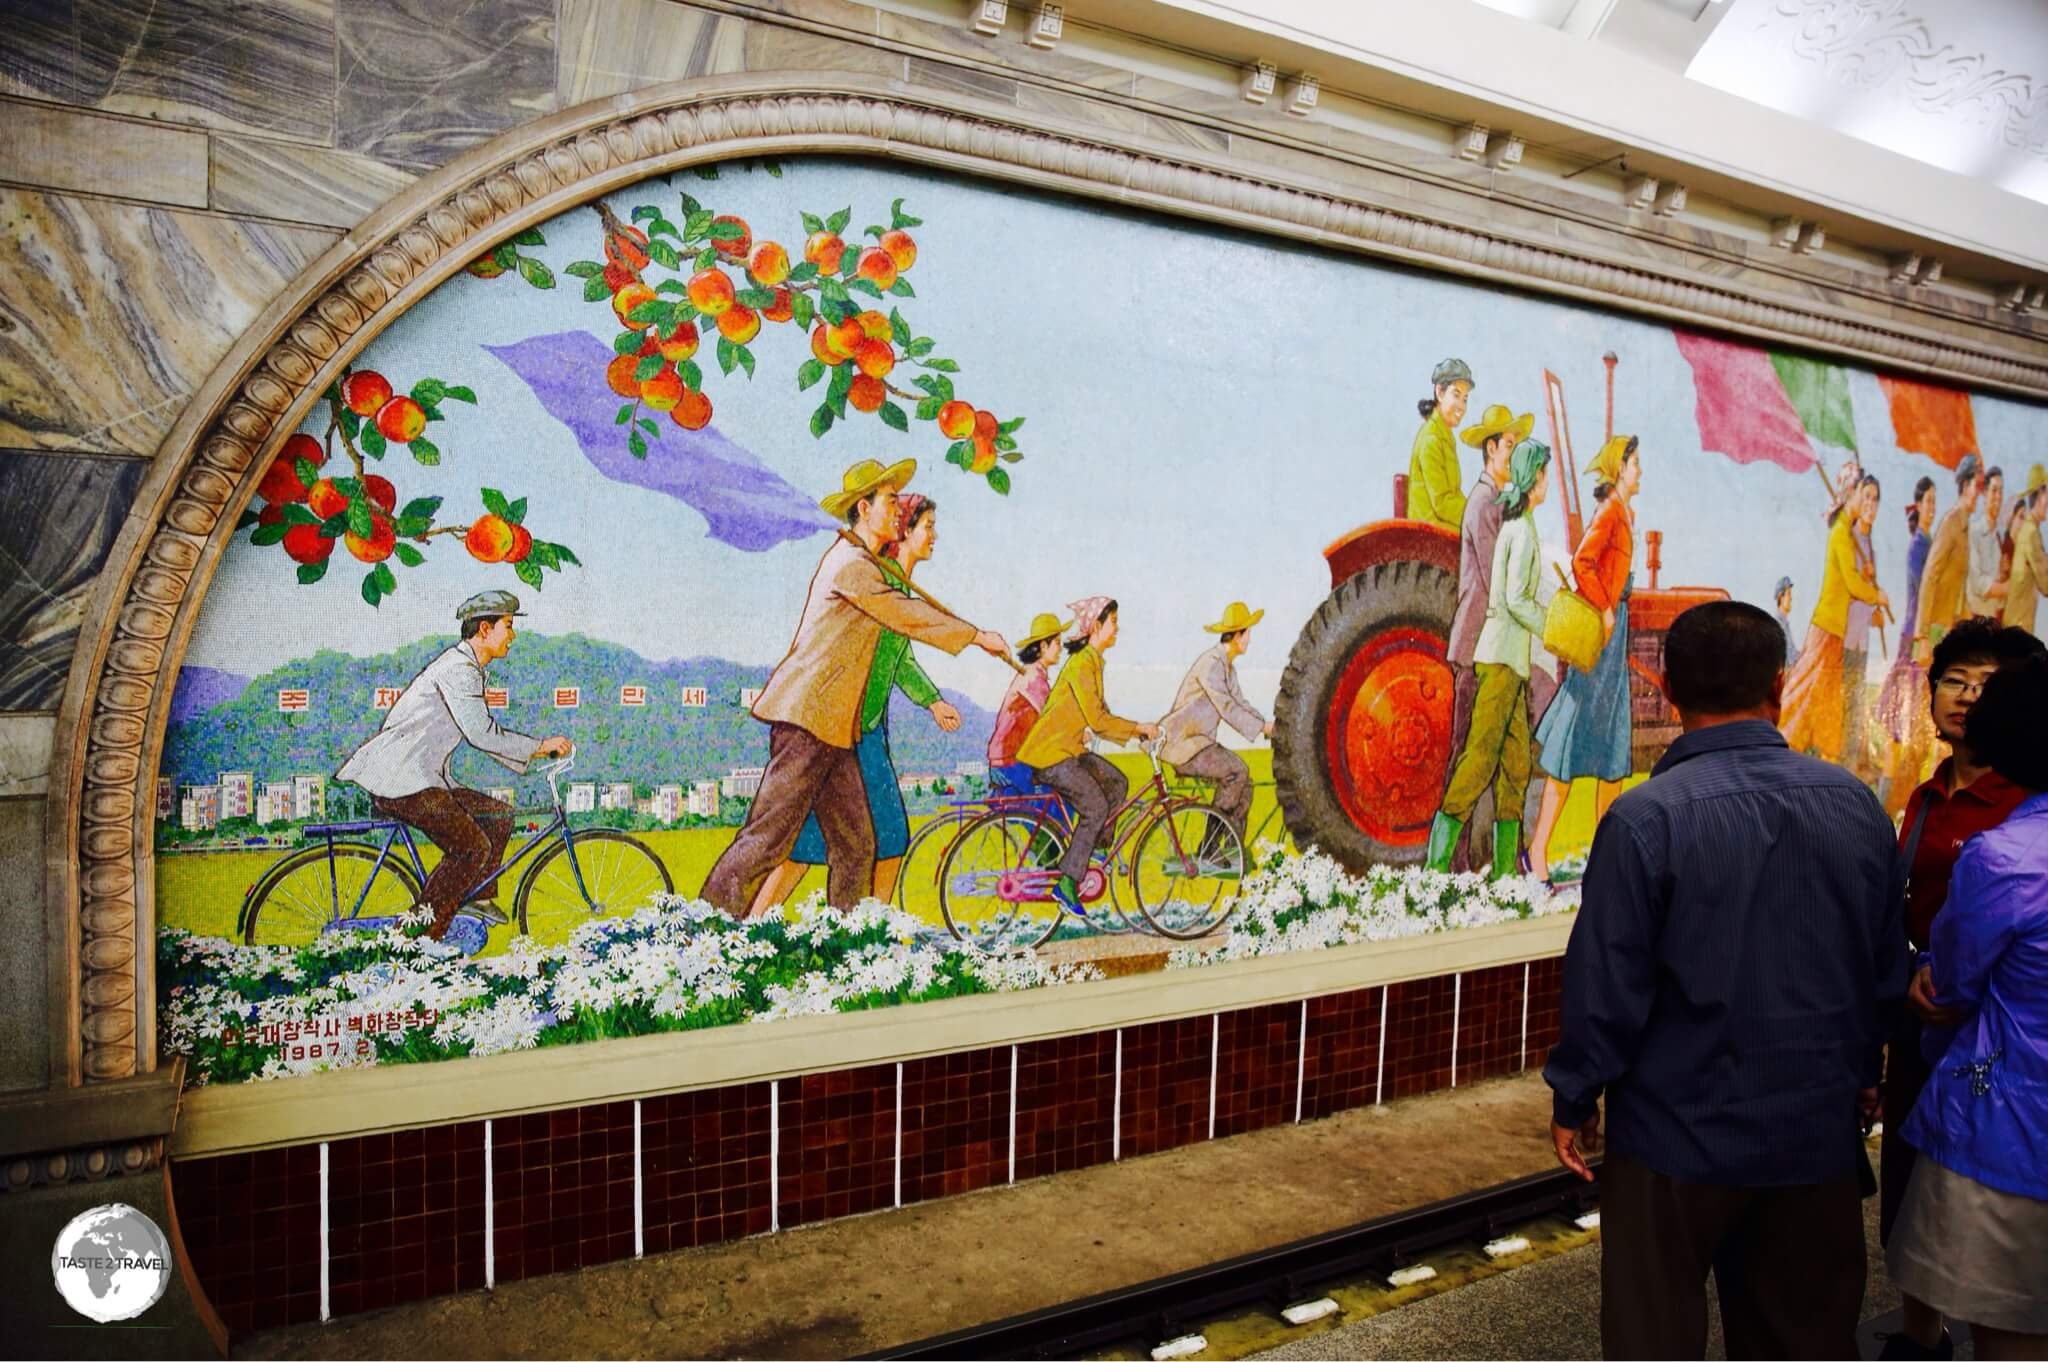 The platforms at Puhung station are adorned with 80 metre long tiled mosaics.